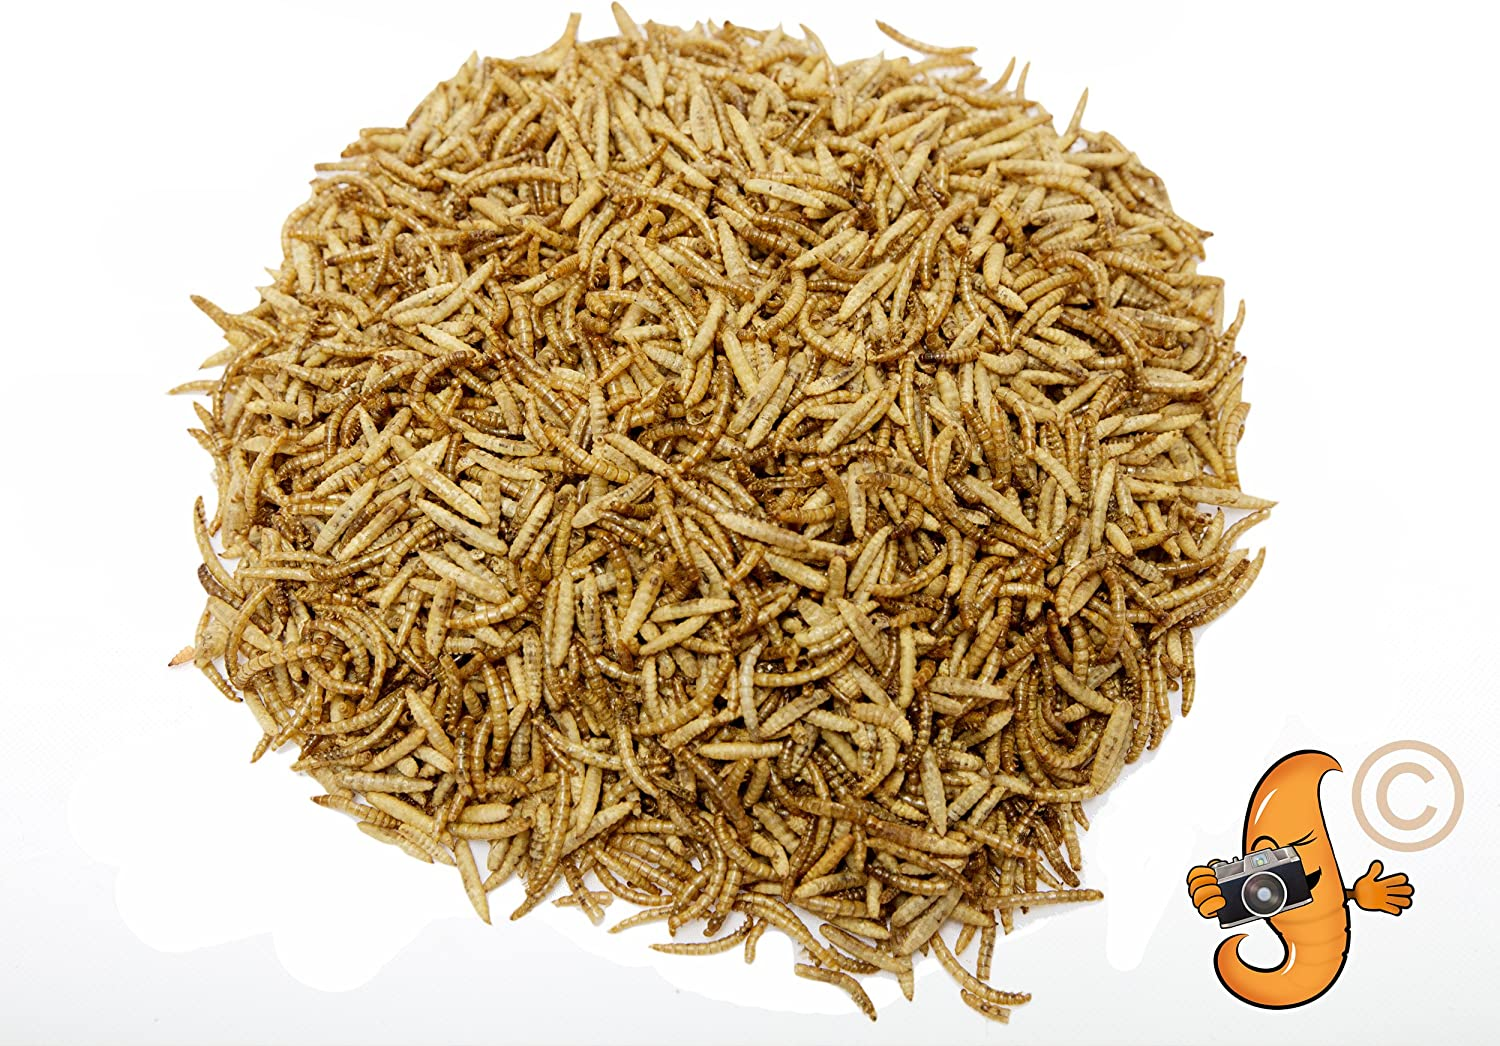 1lb Chubby Mix (Mealworm & Black Soldier Fly Larvae Combo) for Wild Birds, Chickens etc.